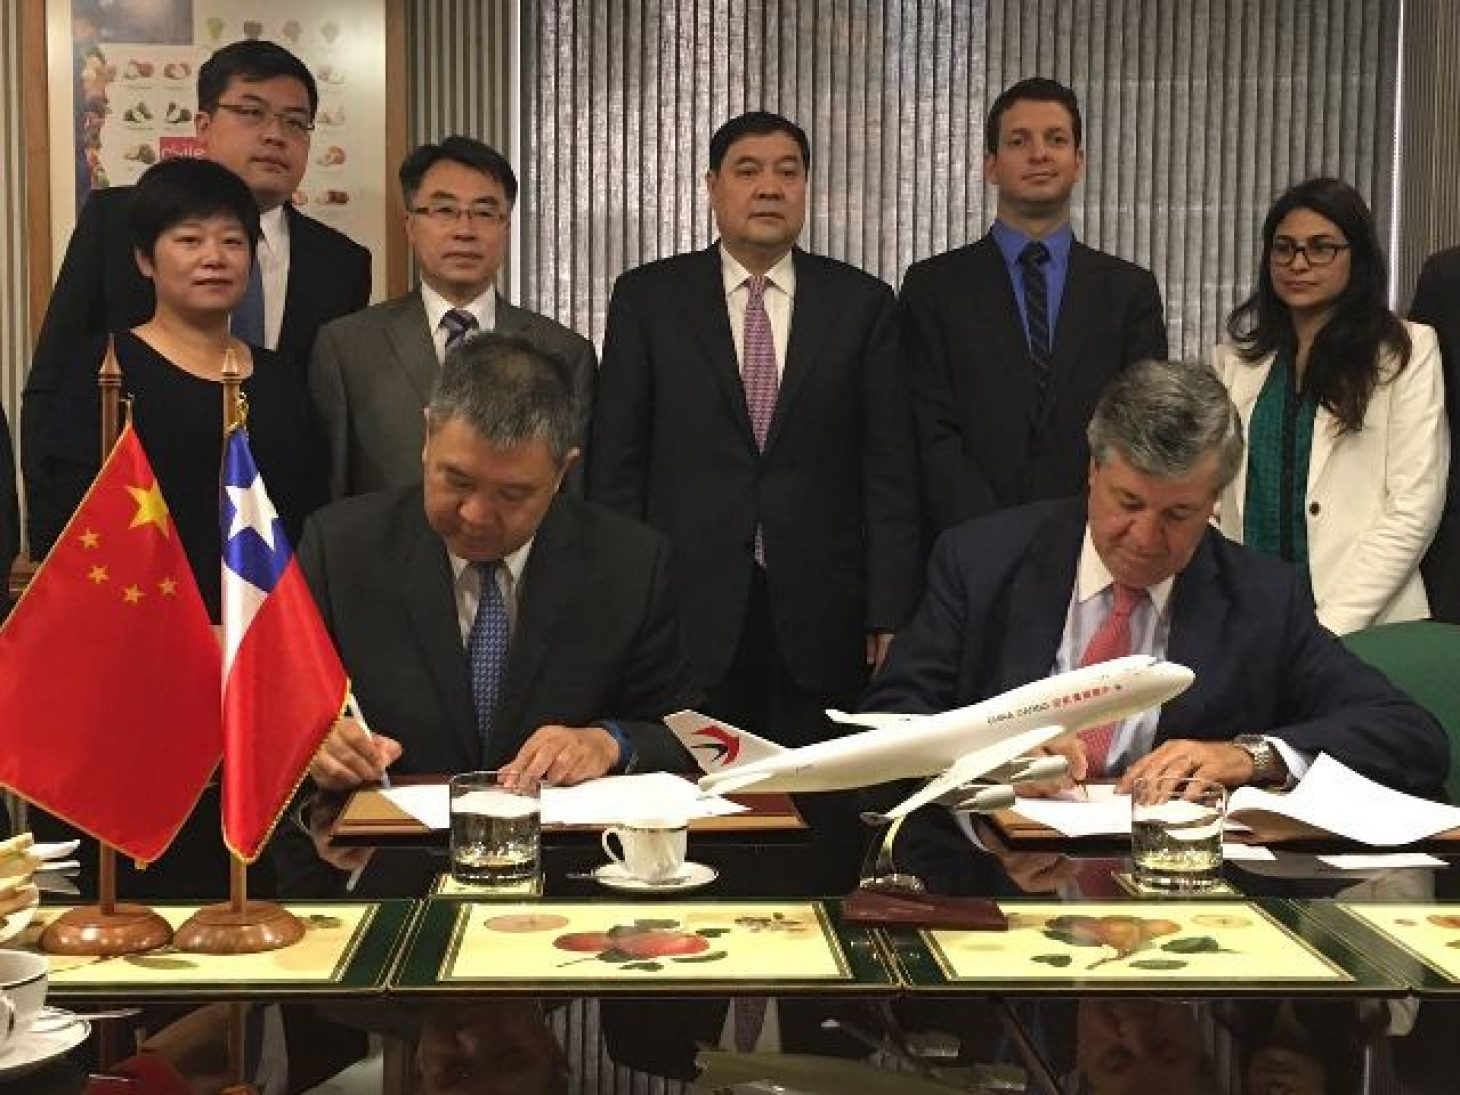 china eastern asoex fruits from chile signature agreement ronal bown fruits cherries cherry